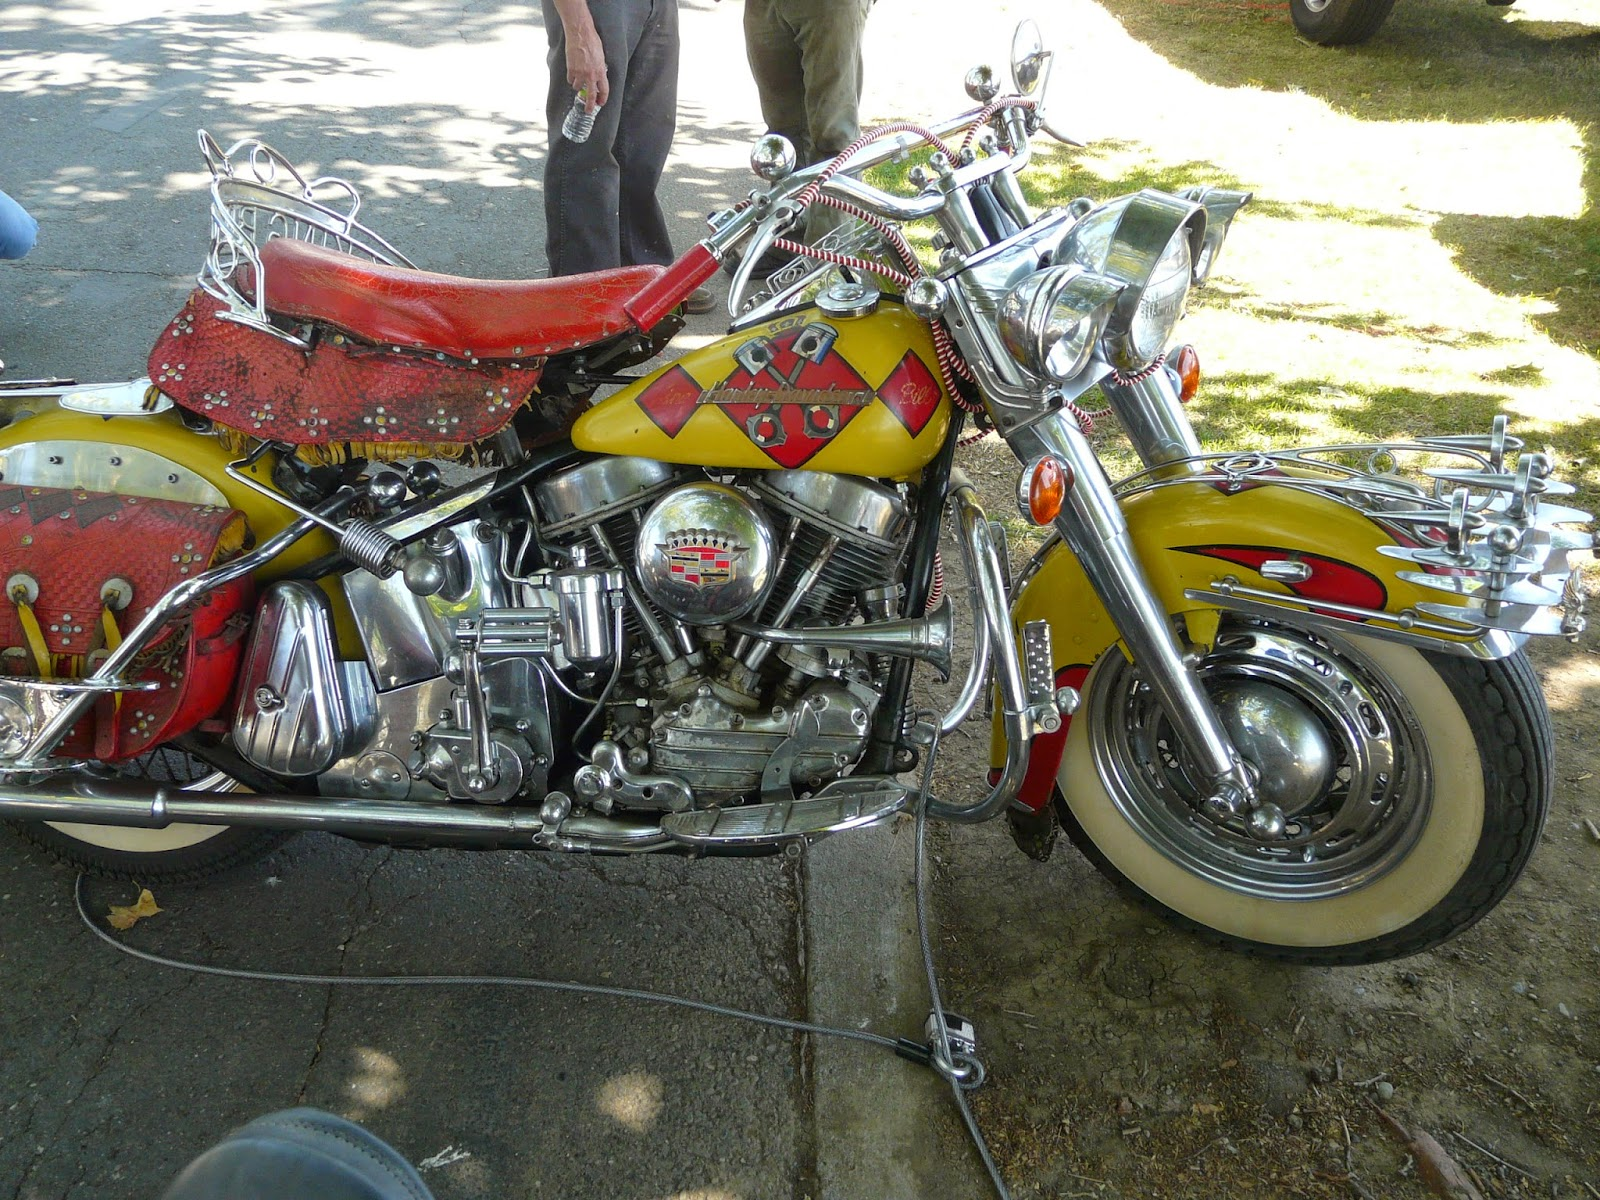 Heavily embellished Harley Panhead Motorcycle right side view